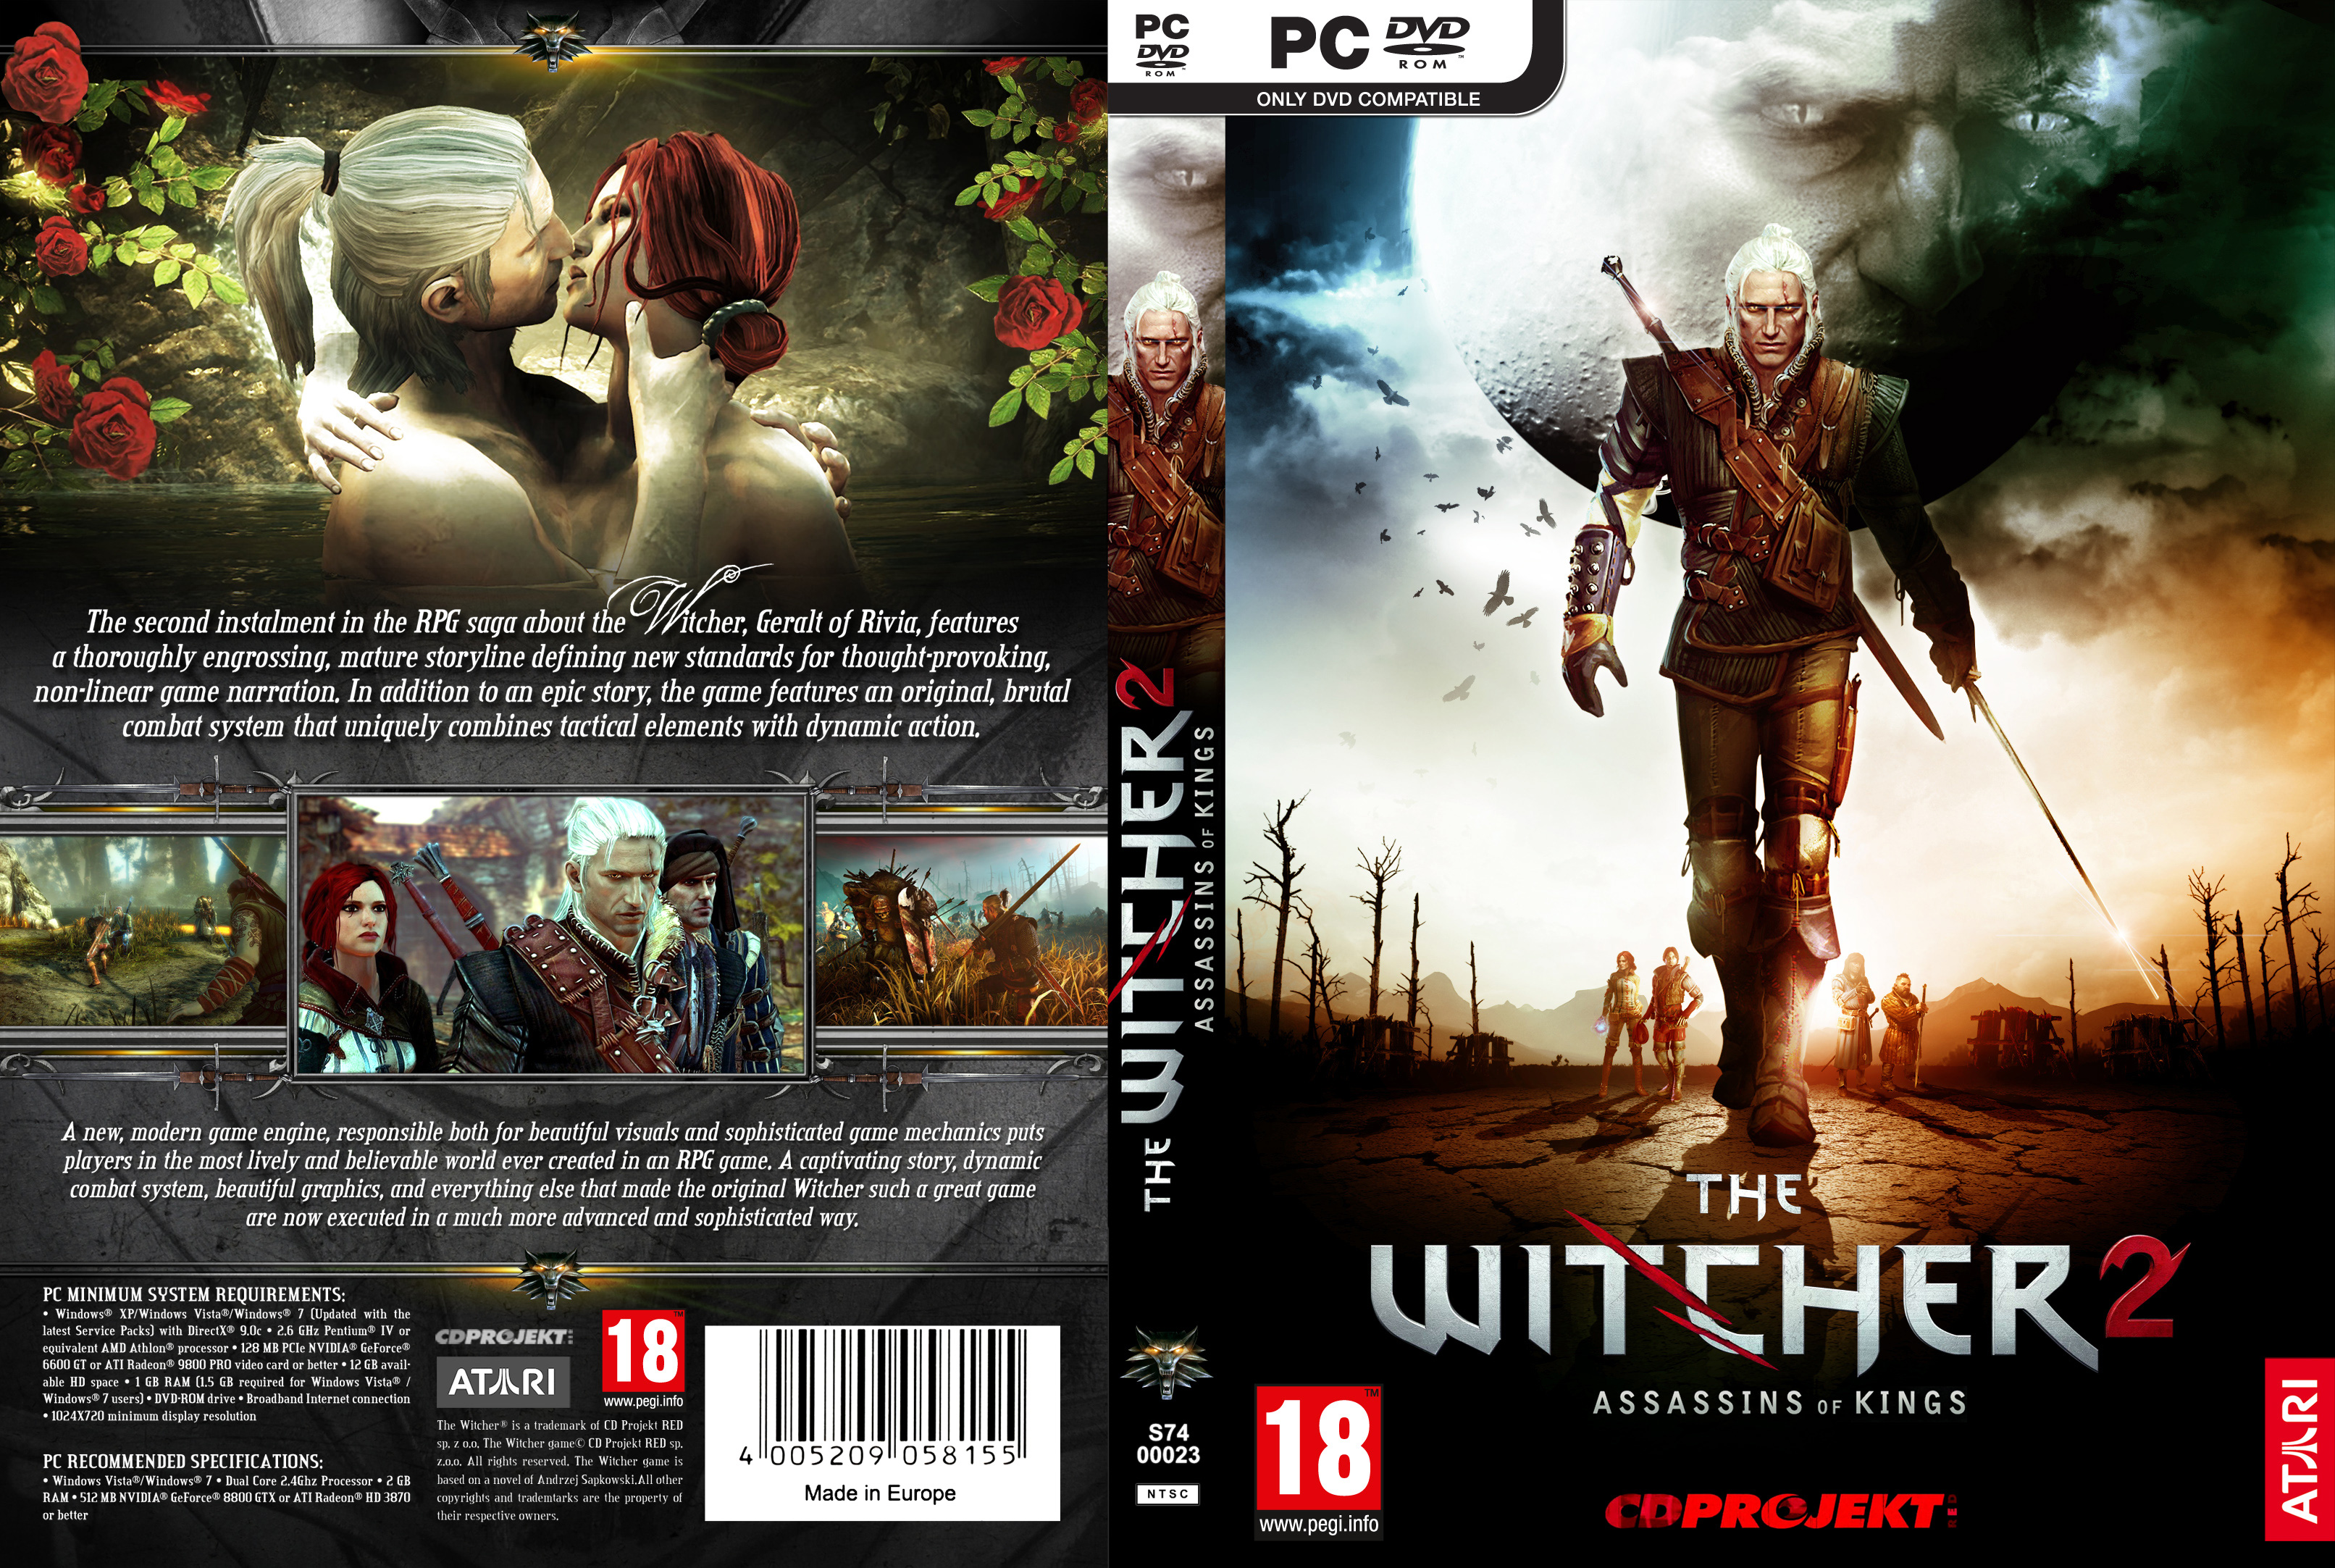 The Witcher 2: Assassins of Kings - DVD obal 2